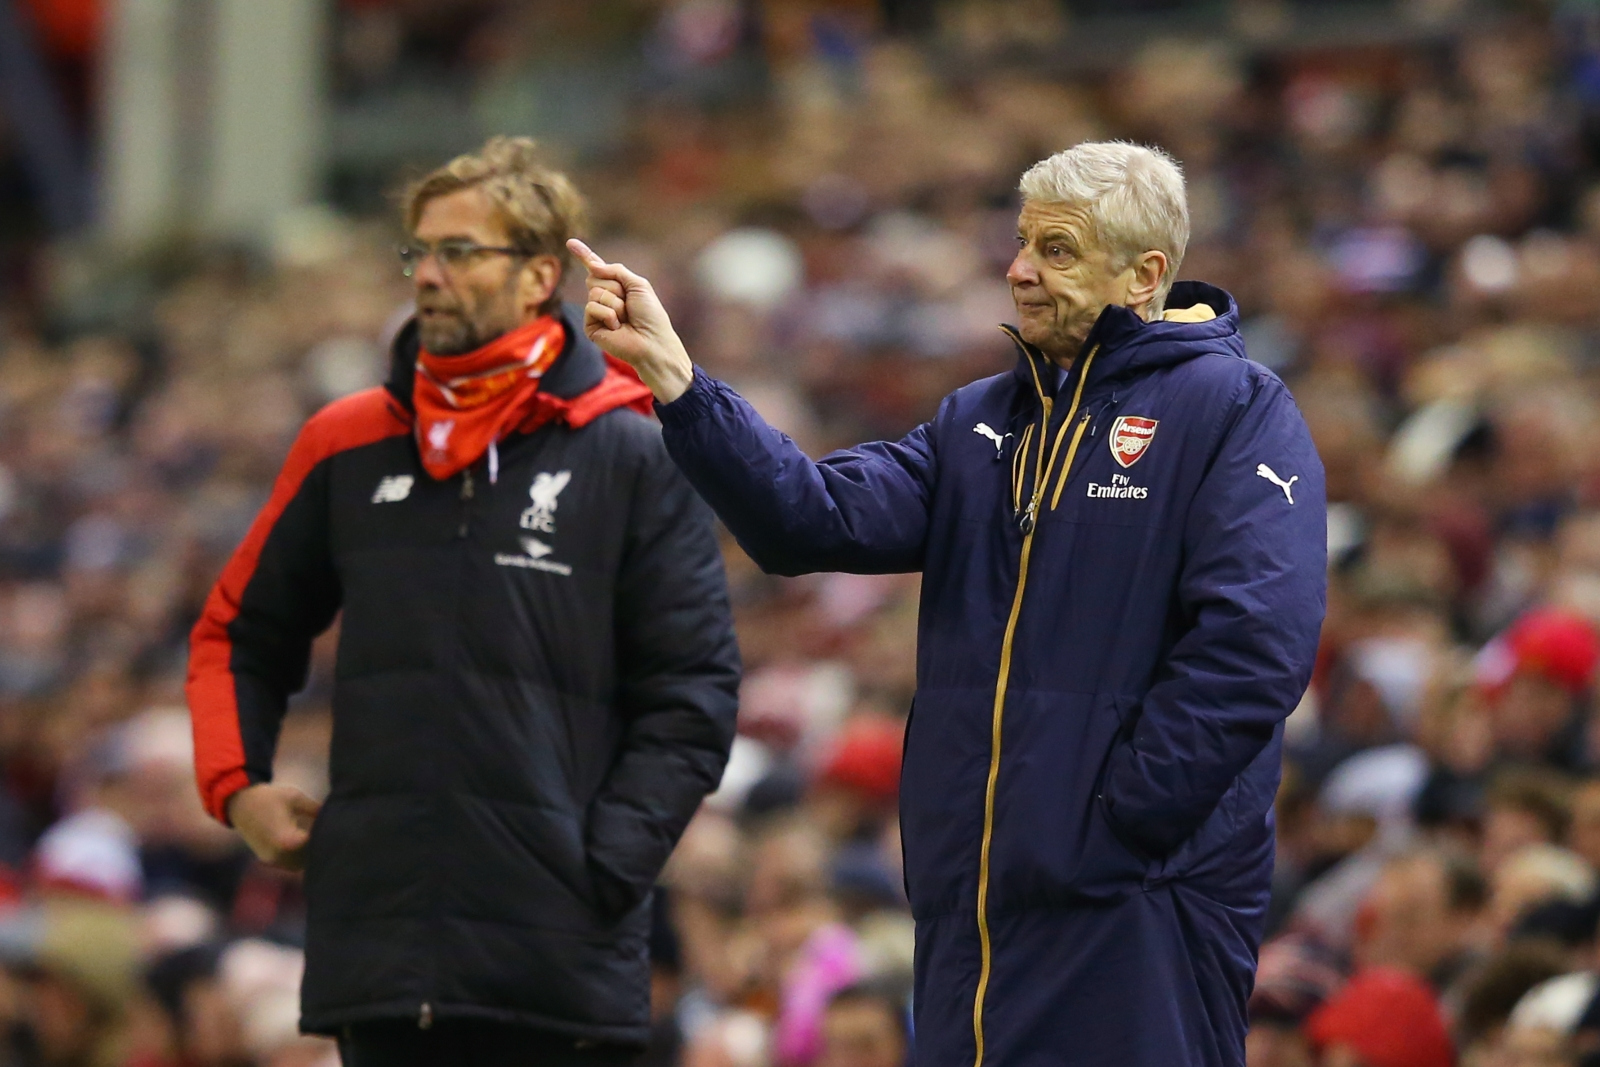 Arsenal vs. Bayern Munich: Arsene Wenger's Key Pre-Match Presser Comments